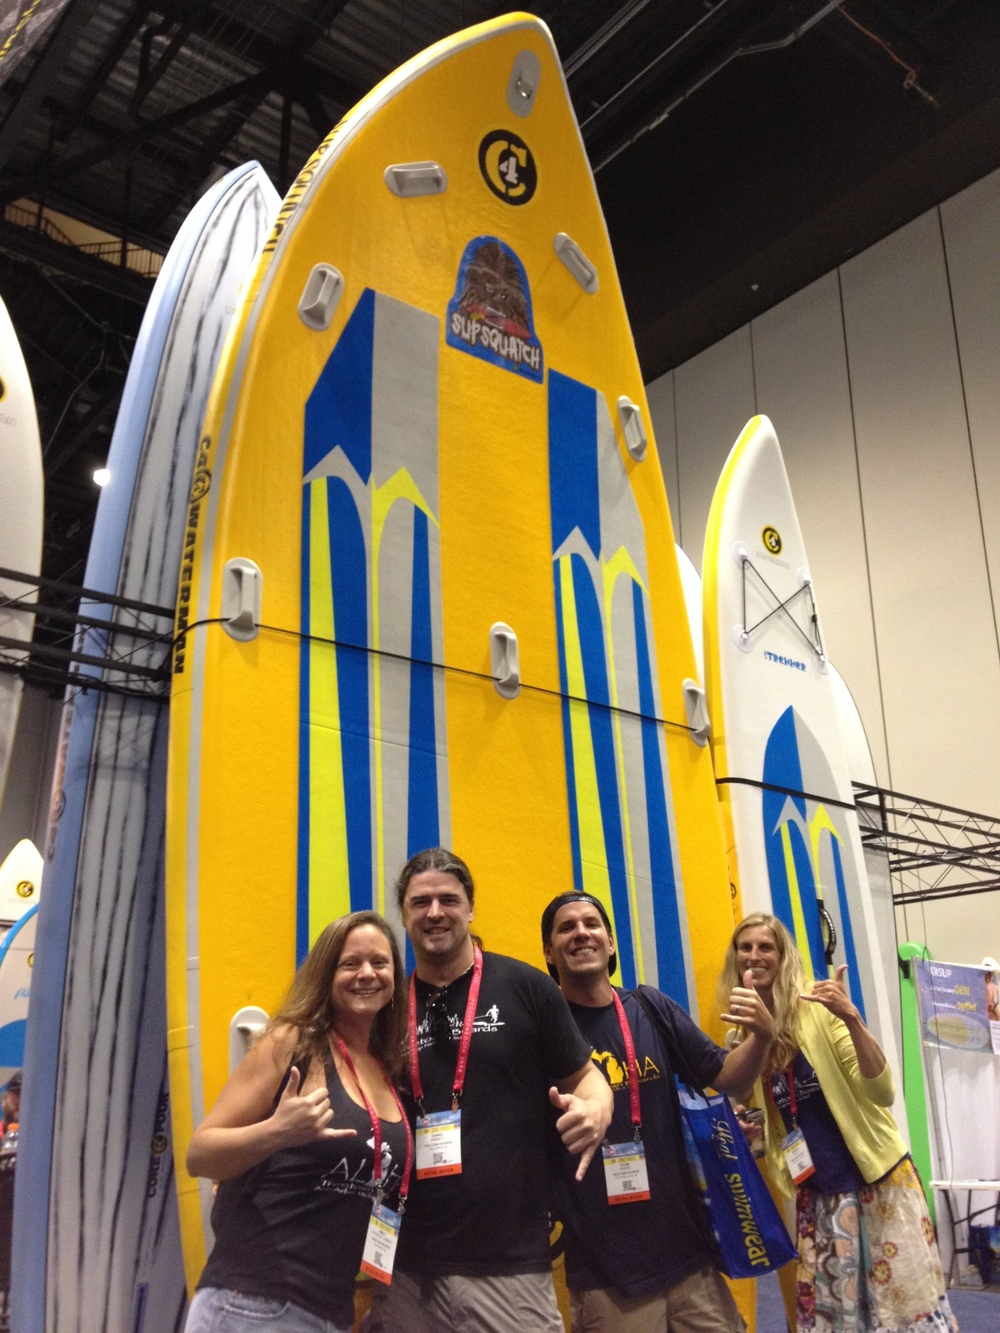 The Treetown Hui with Supsquatch (Surf Expo Orlando, 2015)